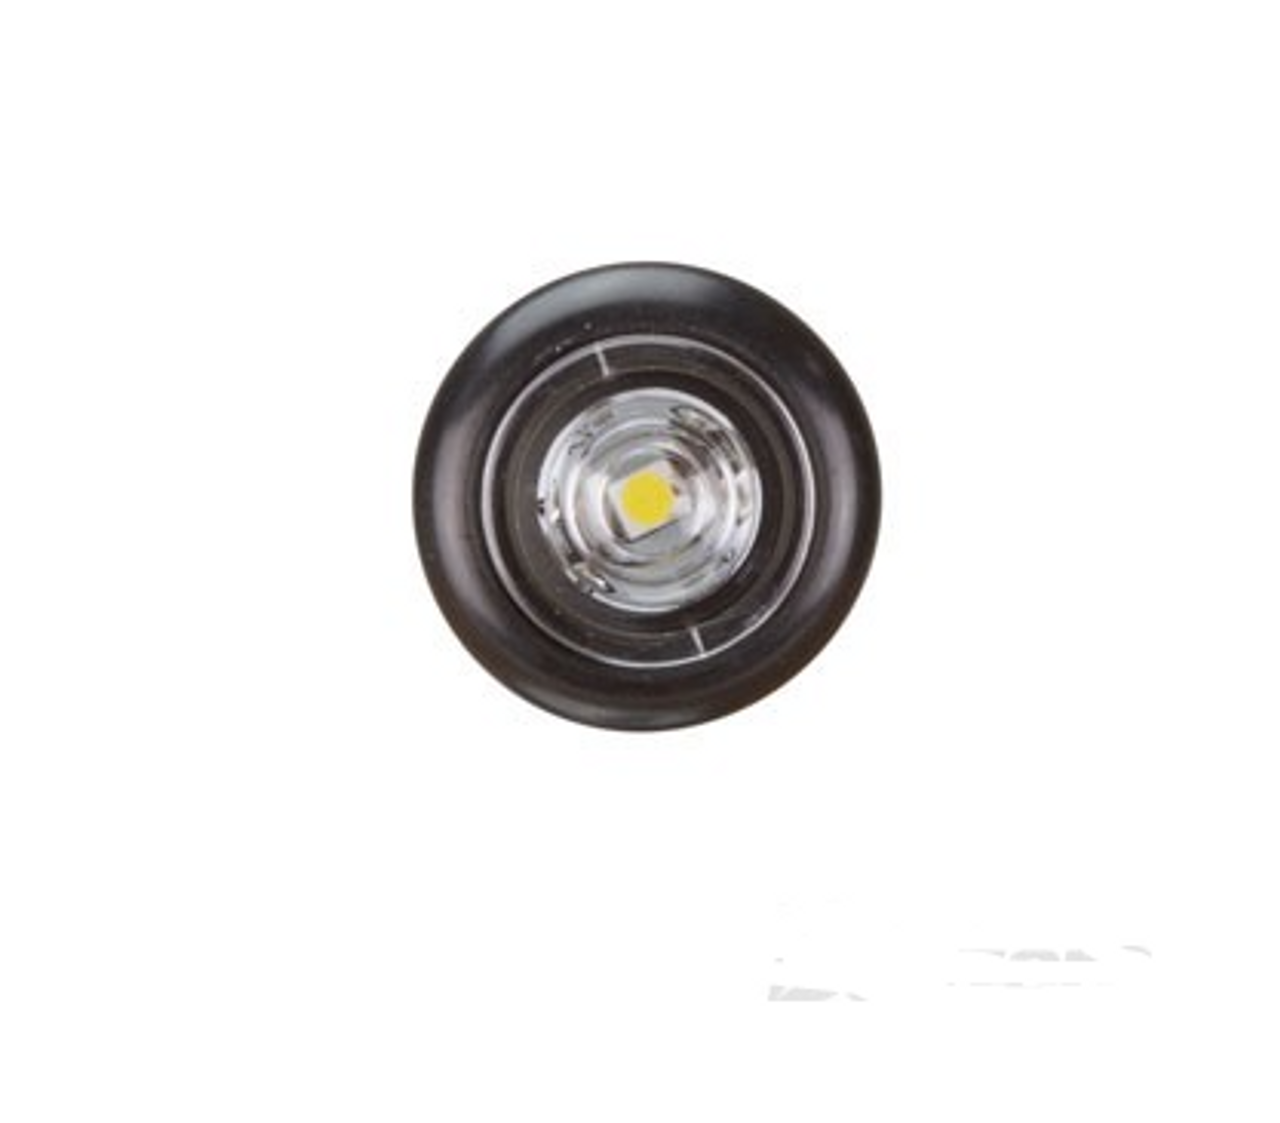 BR11W - Clearance Light LED White. BR11 Series. 10-30V. Flush Rubber Mount. Small Round Light. RoadVision. Ultimate LED.